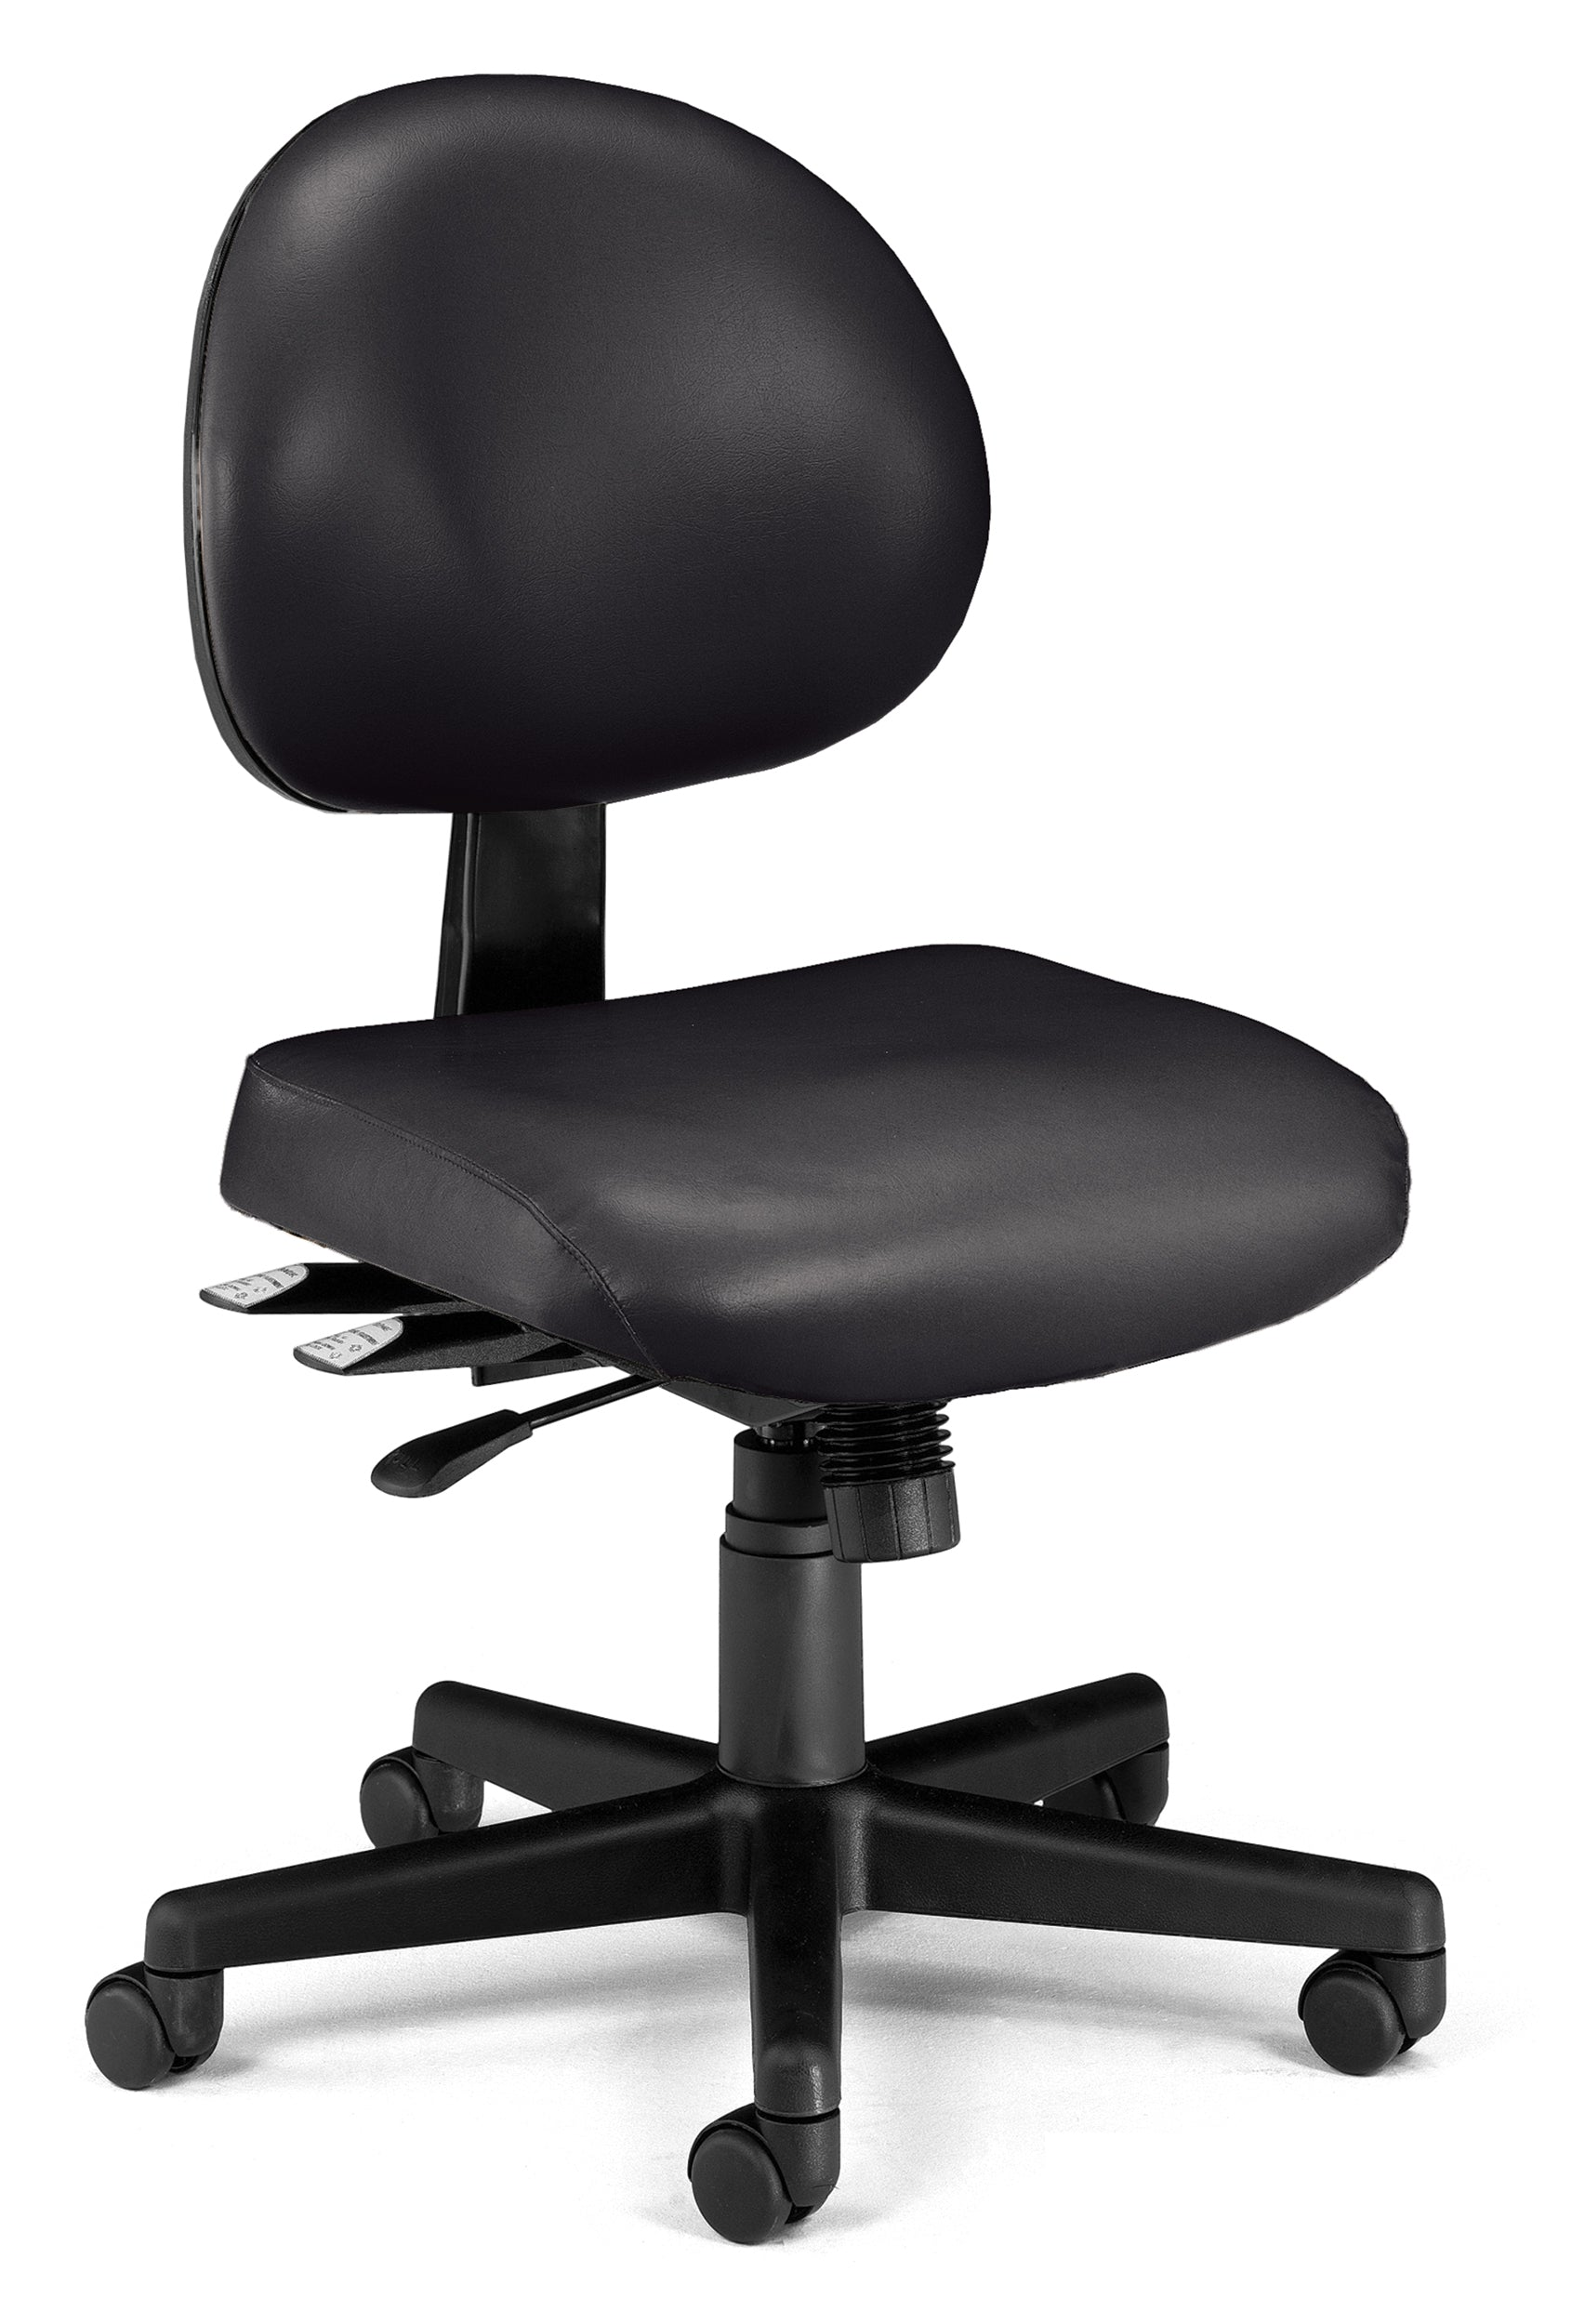 Ofminc Ergonomic Multi-Adjustable Vinyl Armless Task Chair